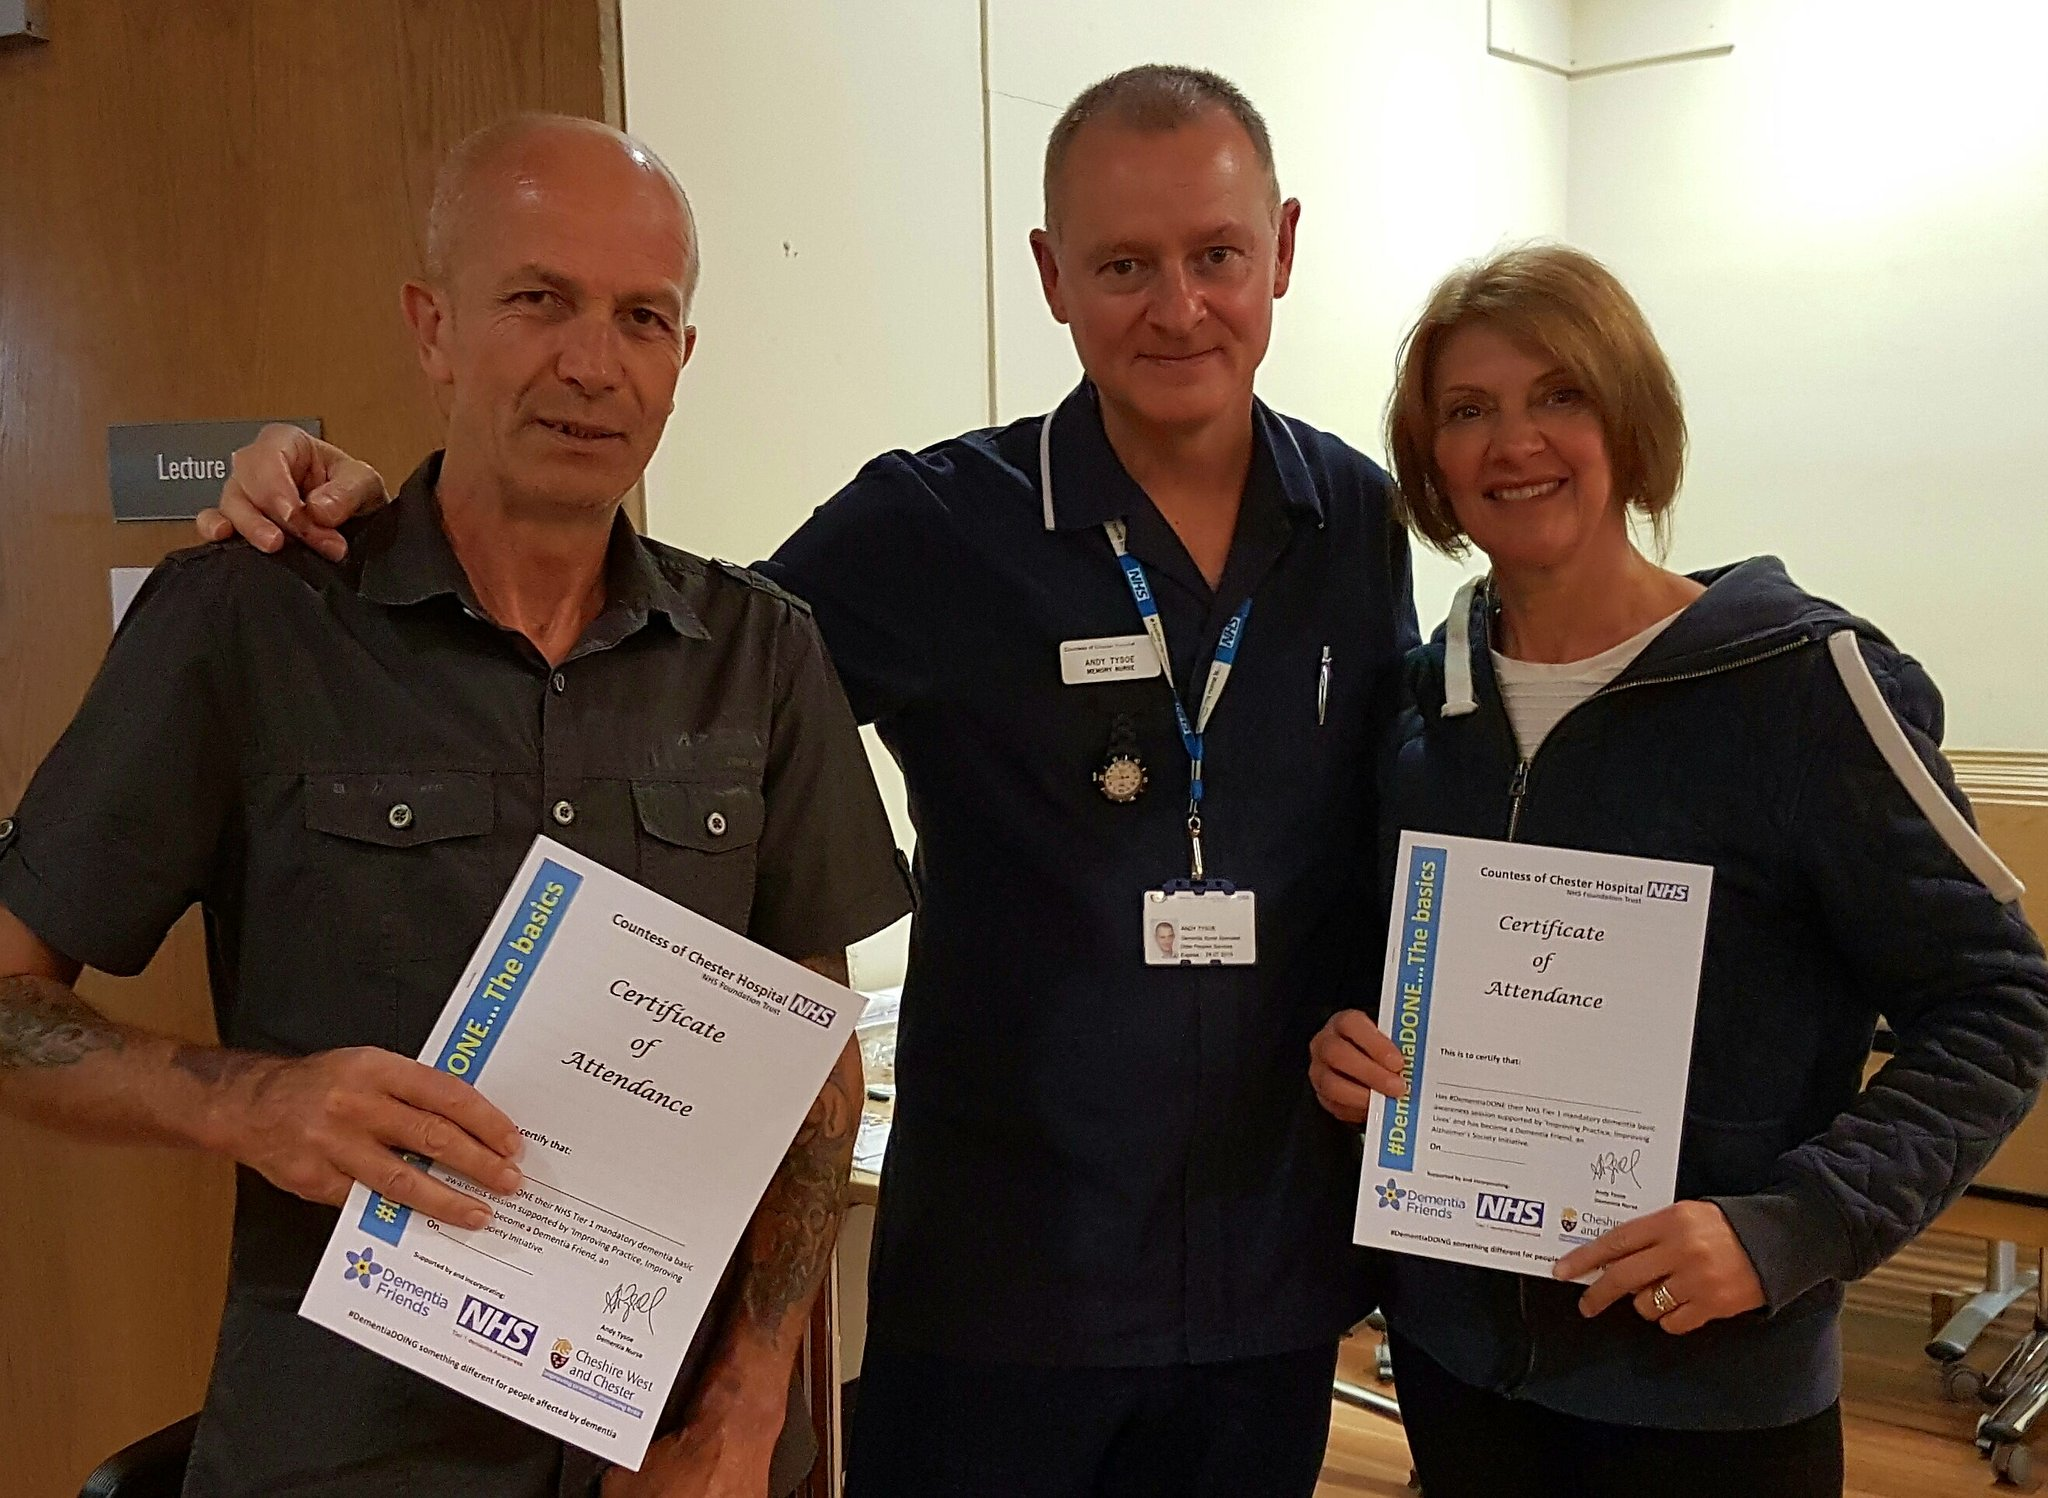 Very very proud 2 announce that @mason4233 @jaynegoodrick attended  #DementiaDo...the basics today @TheCountessNHS 😊 https://t.co/48xa5QFtz6